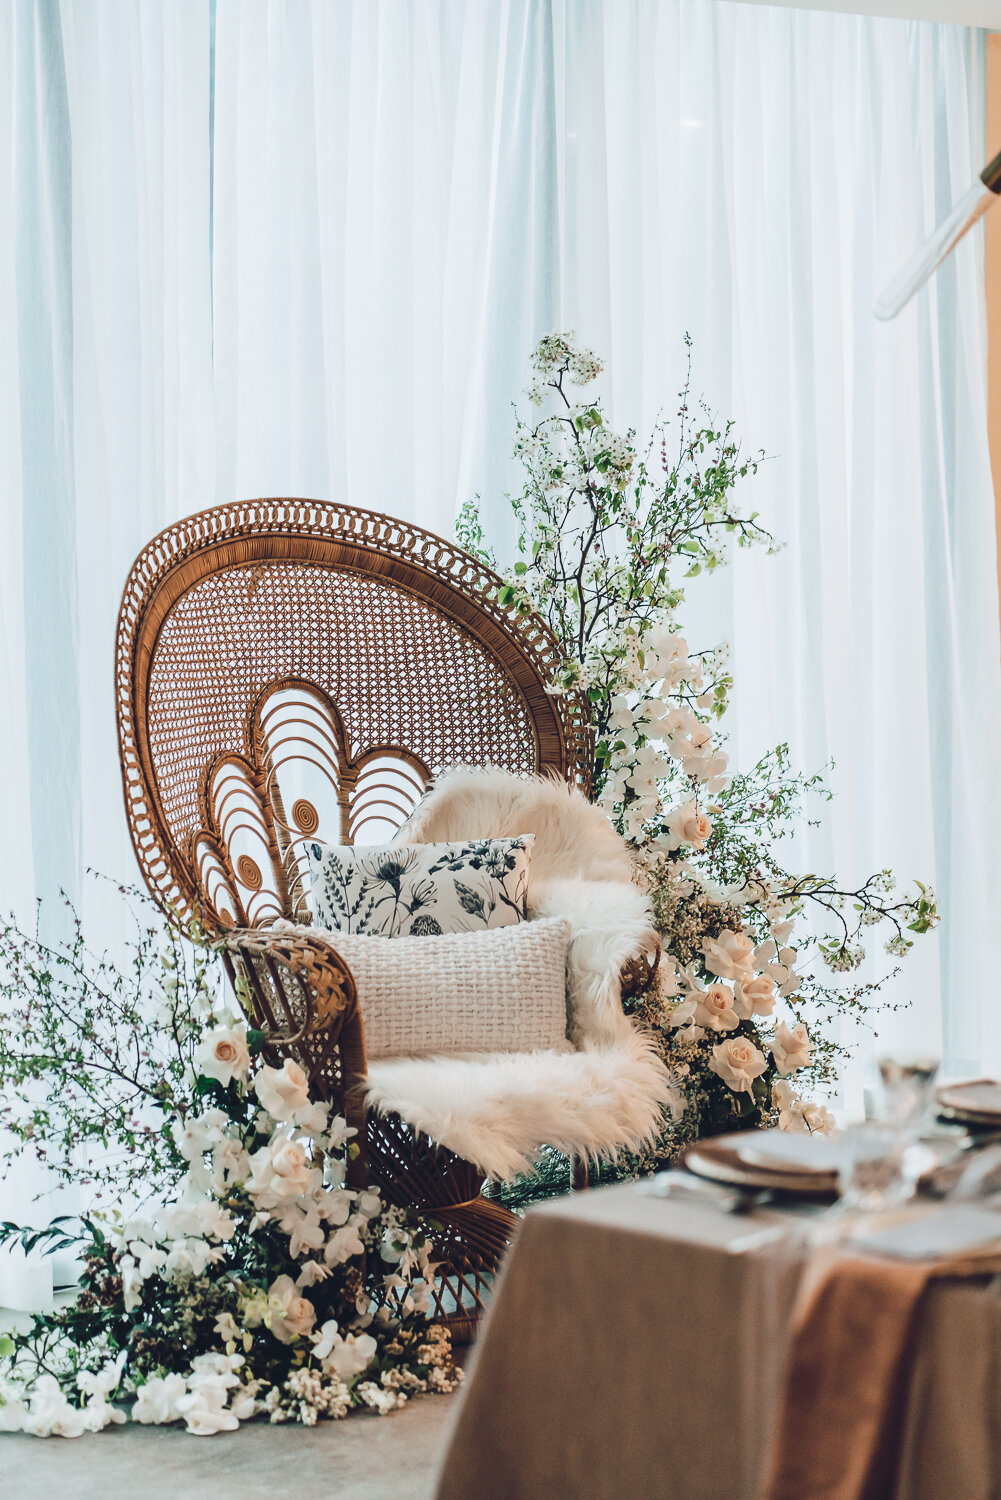 melbourne event planners melbourne event styling event stylist melbourne